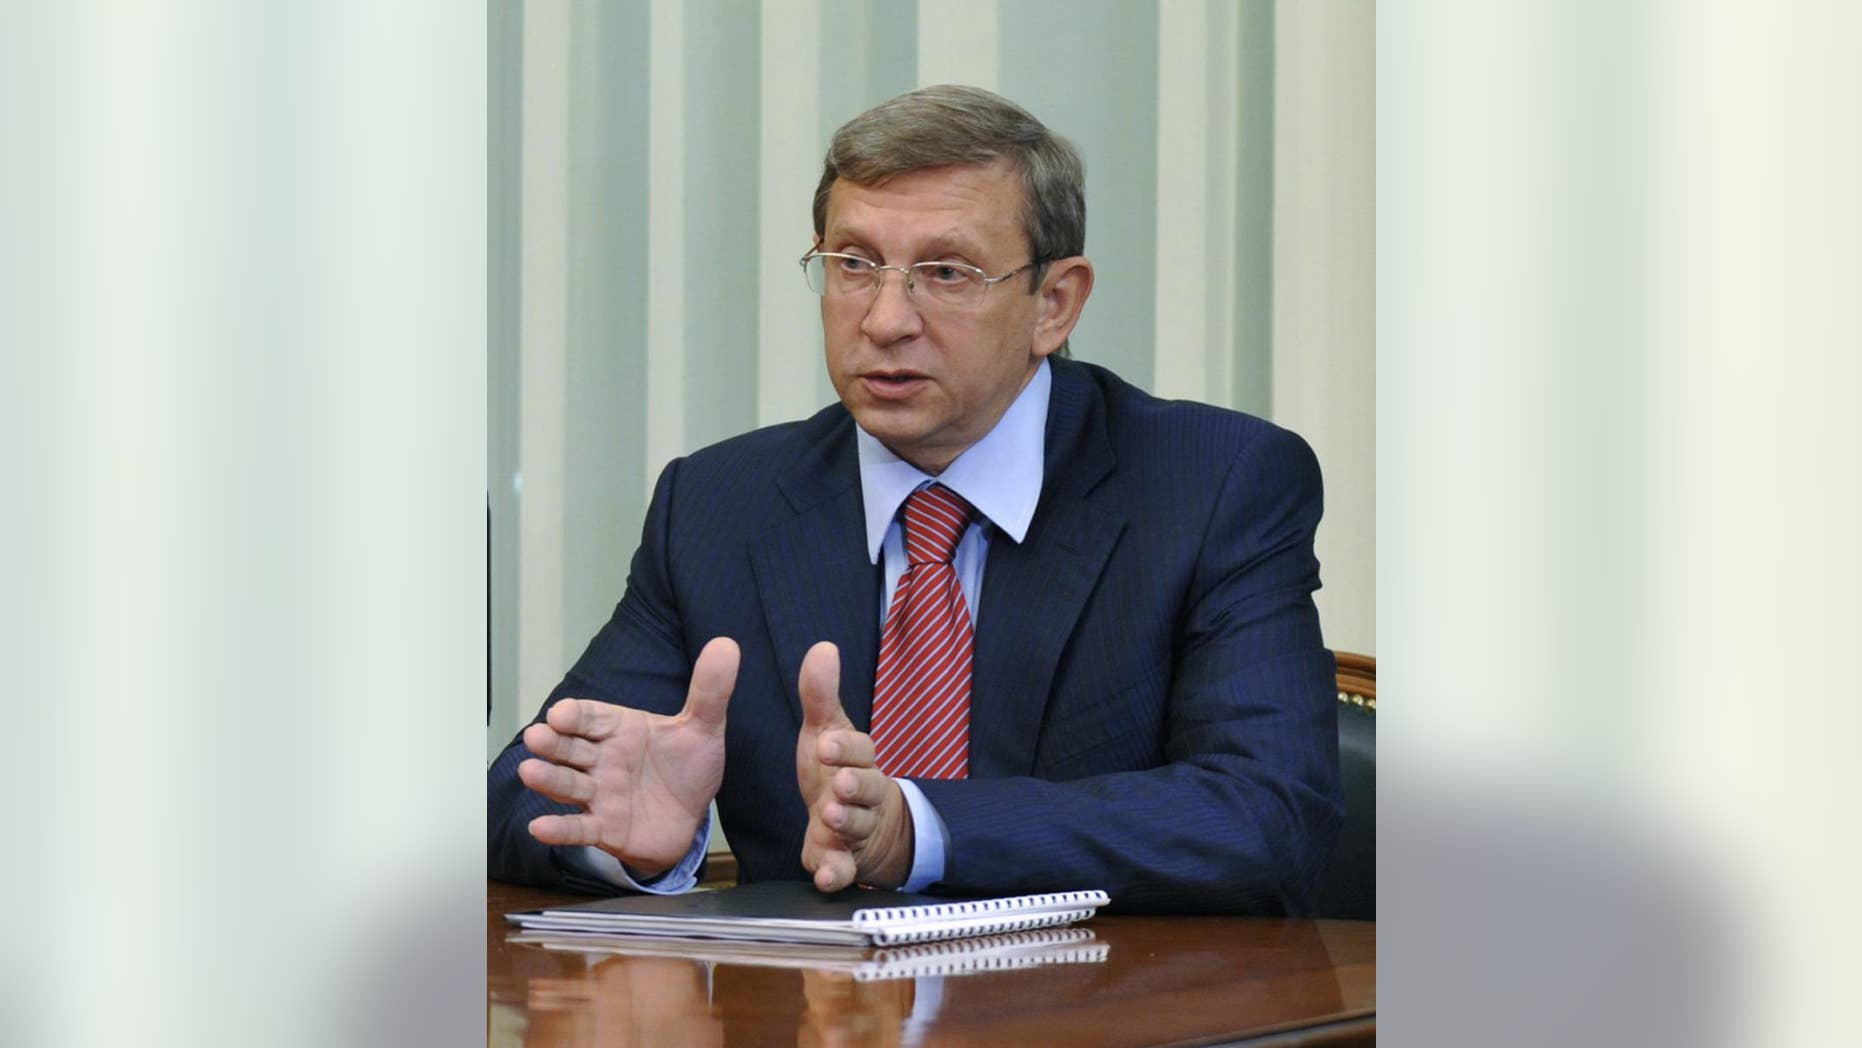 FILE-  In this Tuesday, May 5, 2009 file photo Russian tycoon Vladimir Yevtushenkov, owner of Sistema Holding, speaks during a meeting with then Russian Prime Minister Vladimir Putin in Moscow, Russia. The arrest of the Russian billionaire has sent shares in his holding company into a tailspin Wednesday morning, Sept. 17, 2014. Yevtushenkov, who is worth $9 billion according to the Russian Forbes magazine, was placed under house arrest late Tuesday, Sept. 16, in a money-laundering case which has drawn comparisons with a government crackdown on the Yukos oil company more than a decade ago. (AP Photo/RIA Novosti, Alexei Druzhinin, Presidential Press Service, File)